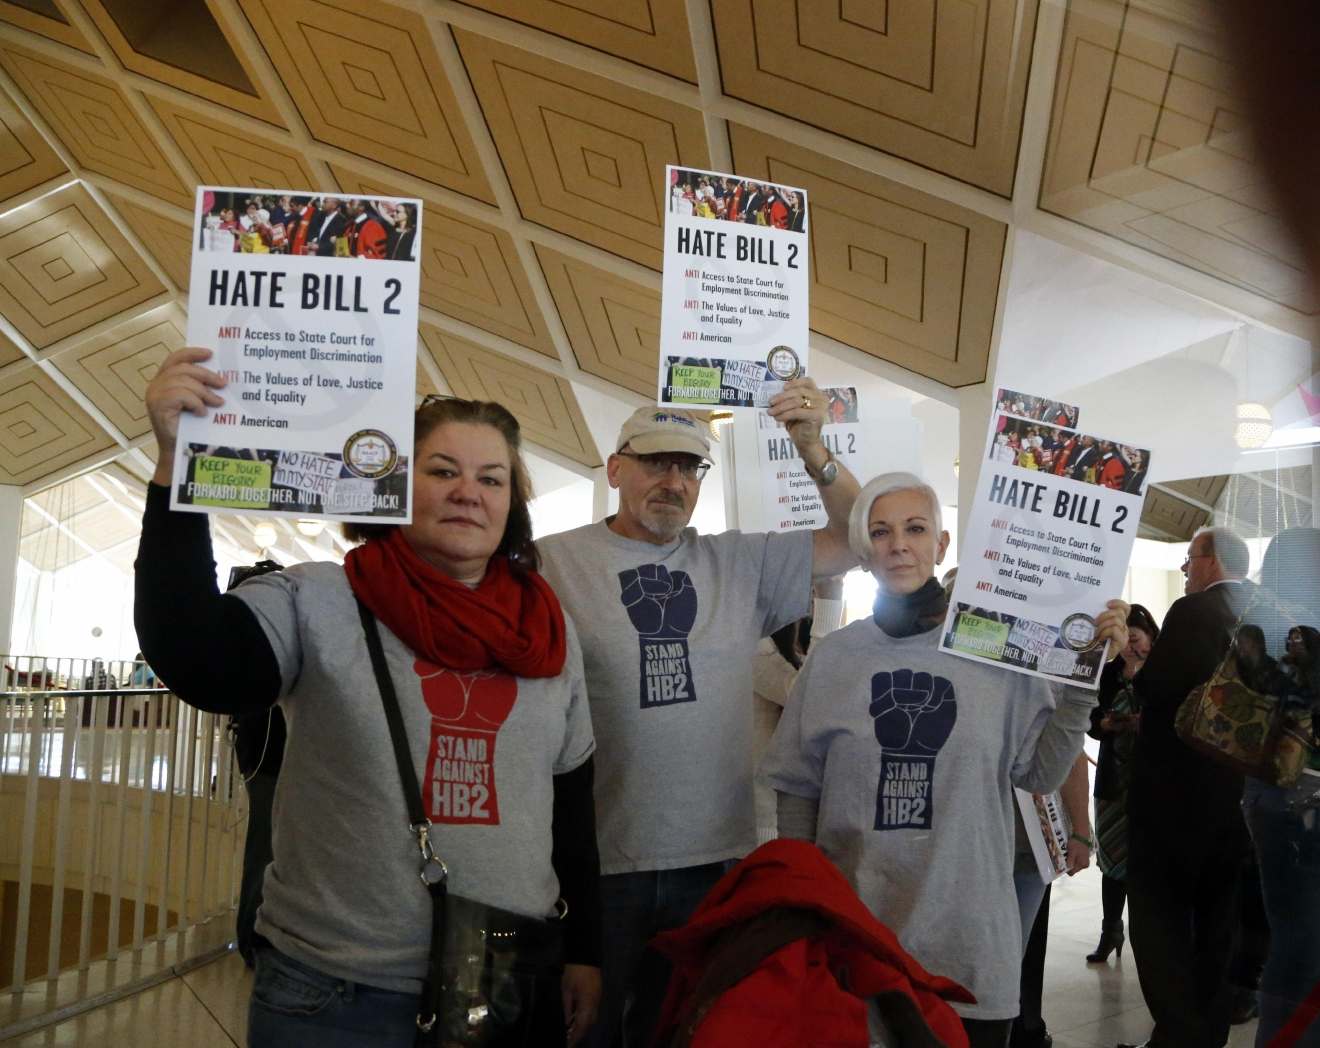 Opponents of HB2 hold signs outside the N.C. House chambers gallery as the N.C. General Assembly convenes for a special session at the Legislative Building in Raleigh, NC on Dec. 21, 2016.